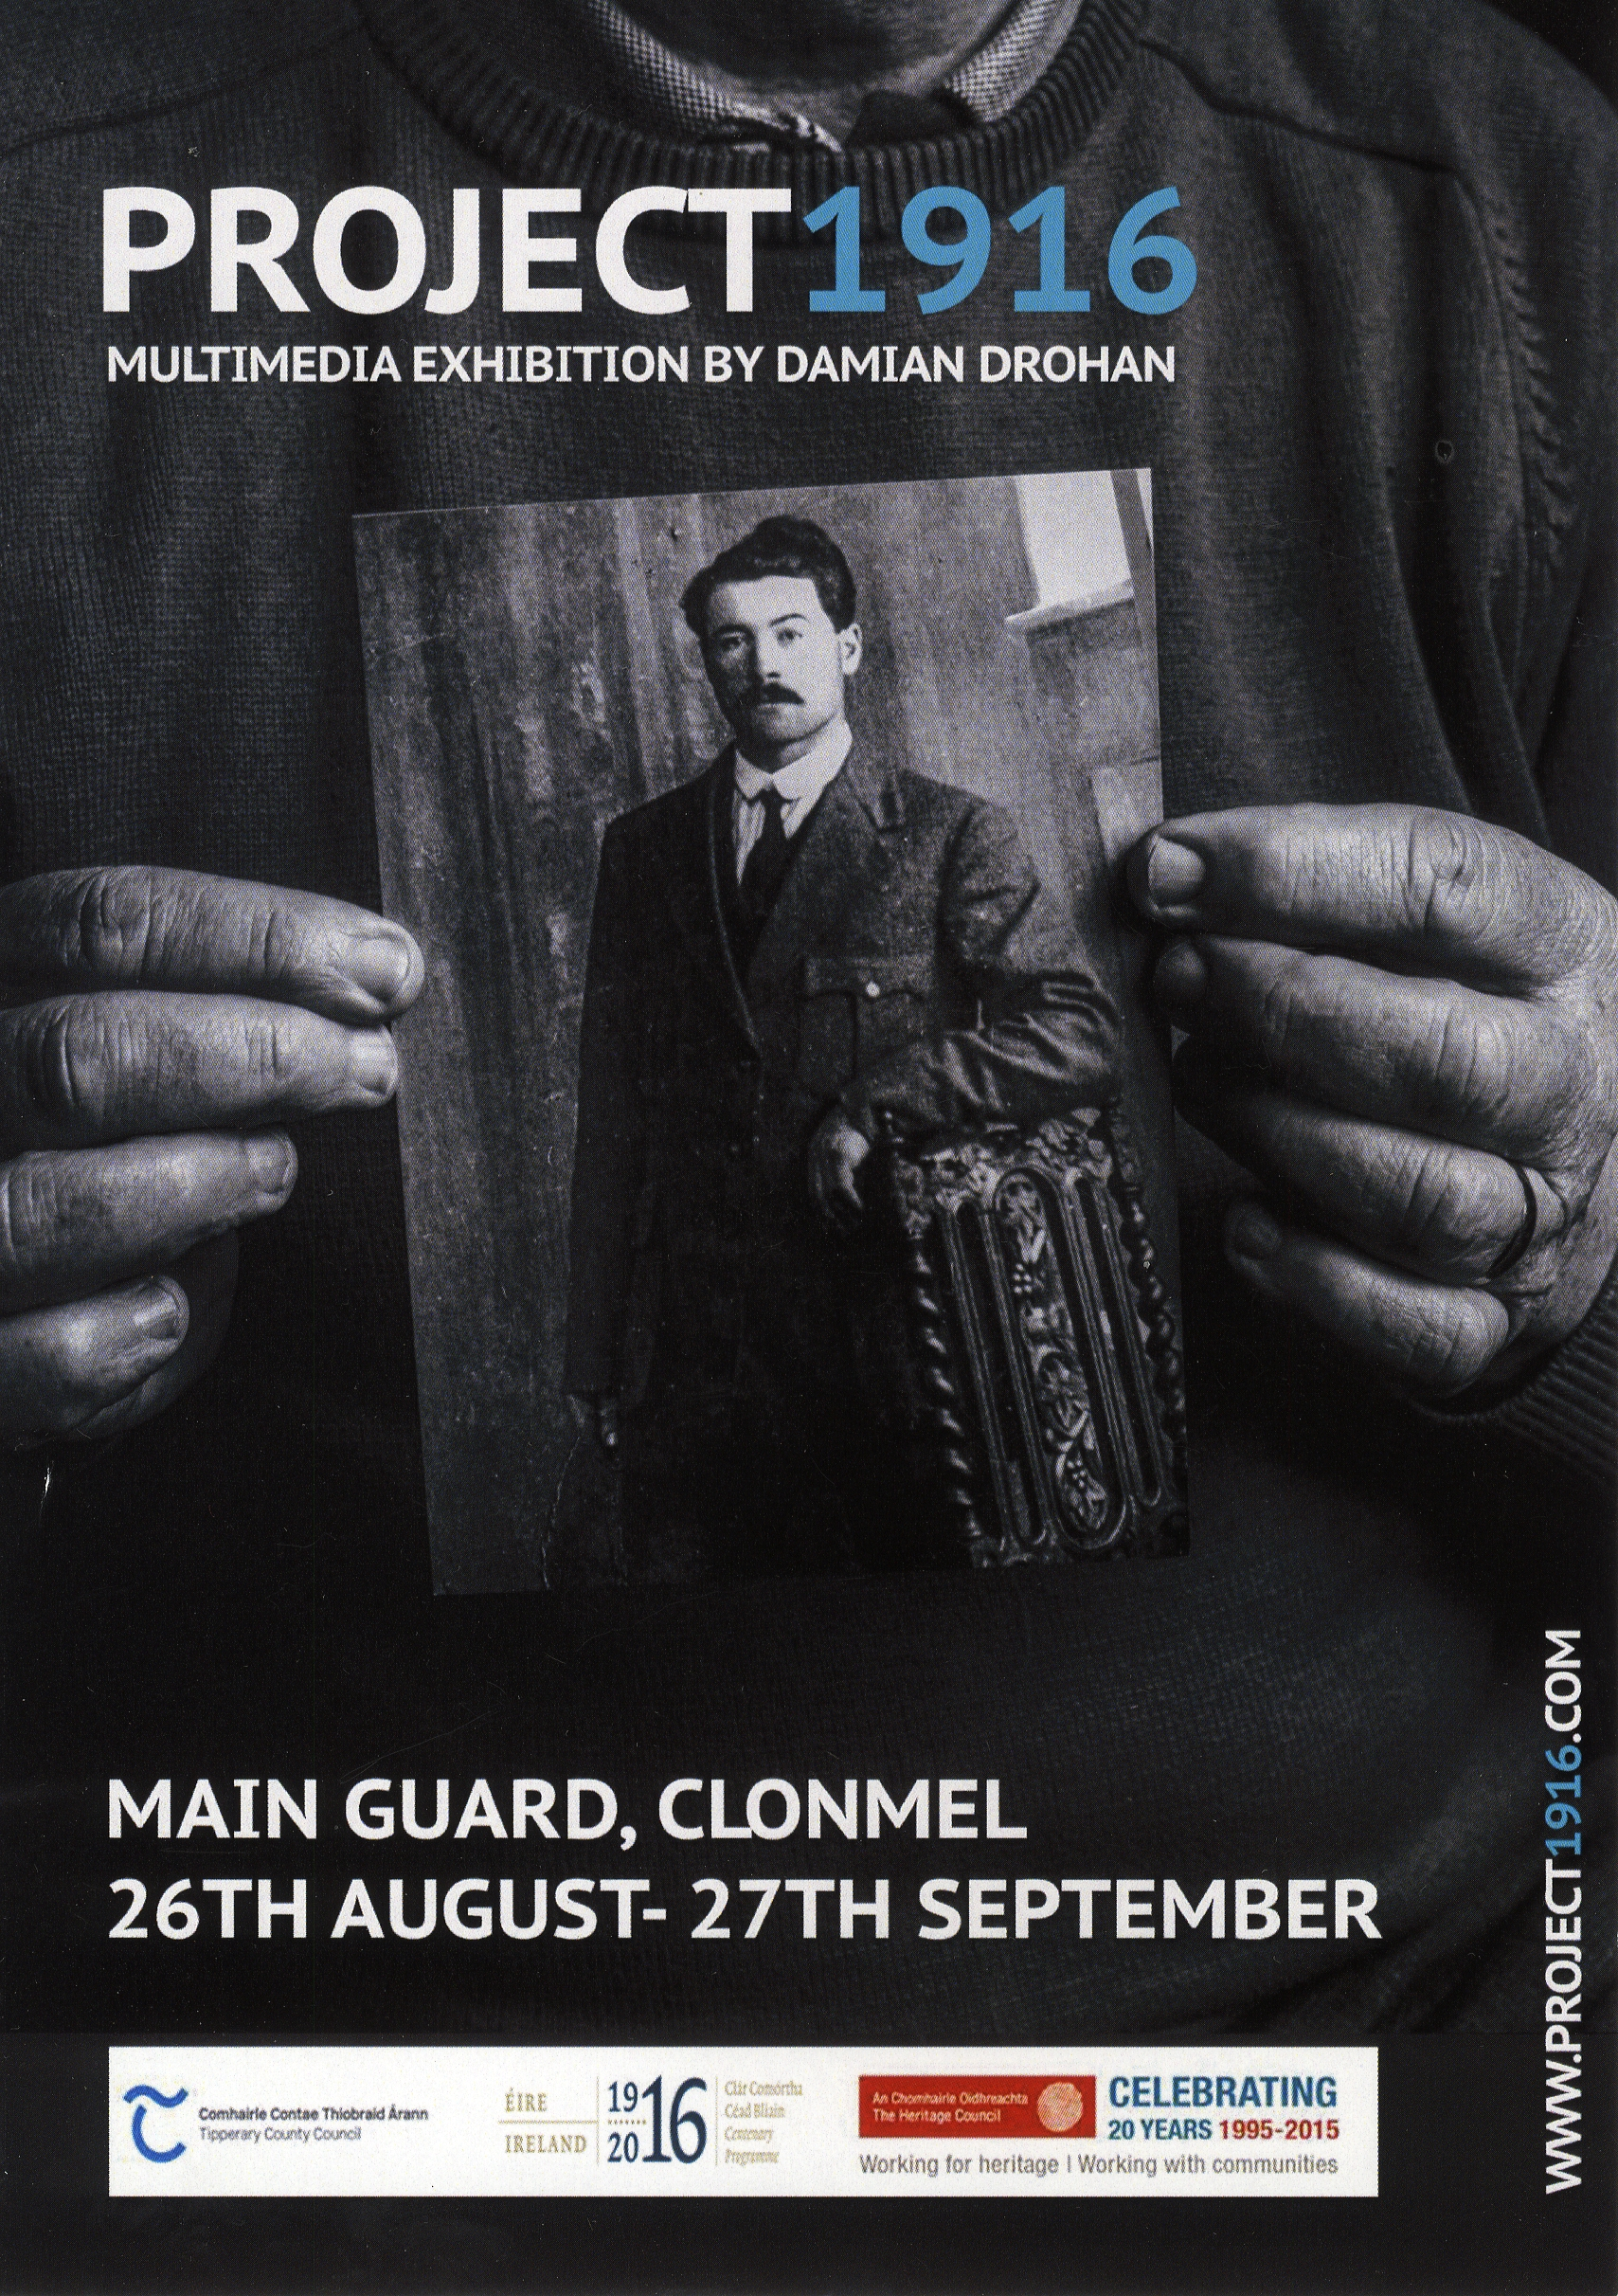 Project 1916 Multimedia Exhibition – Damian Drohan